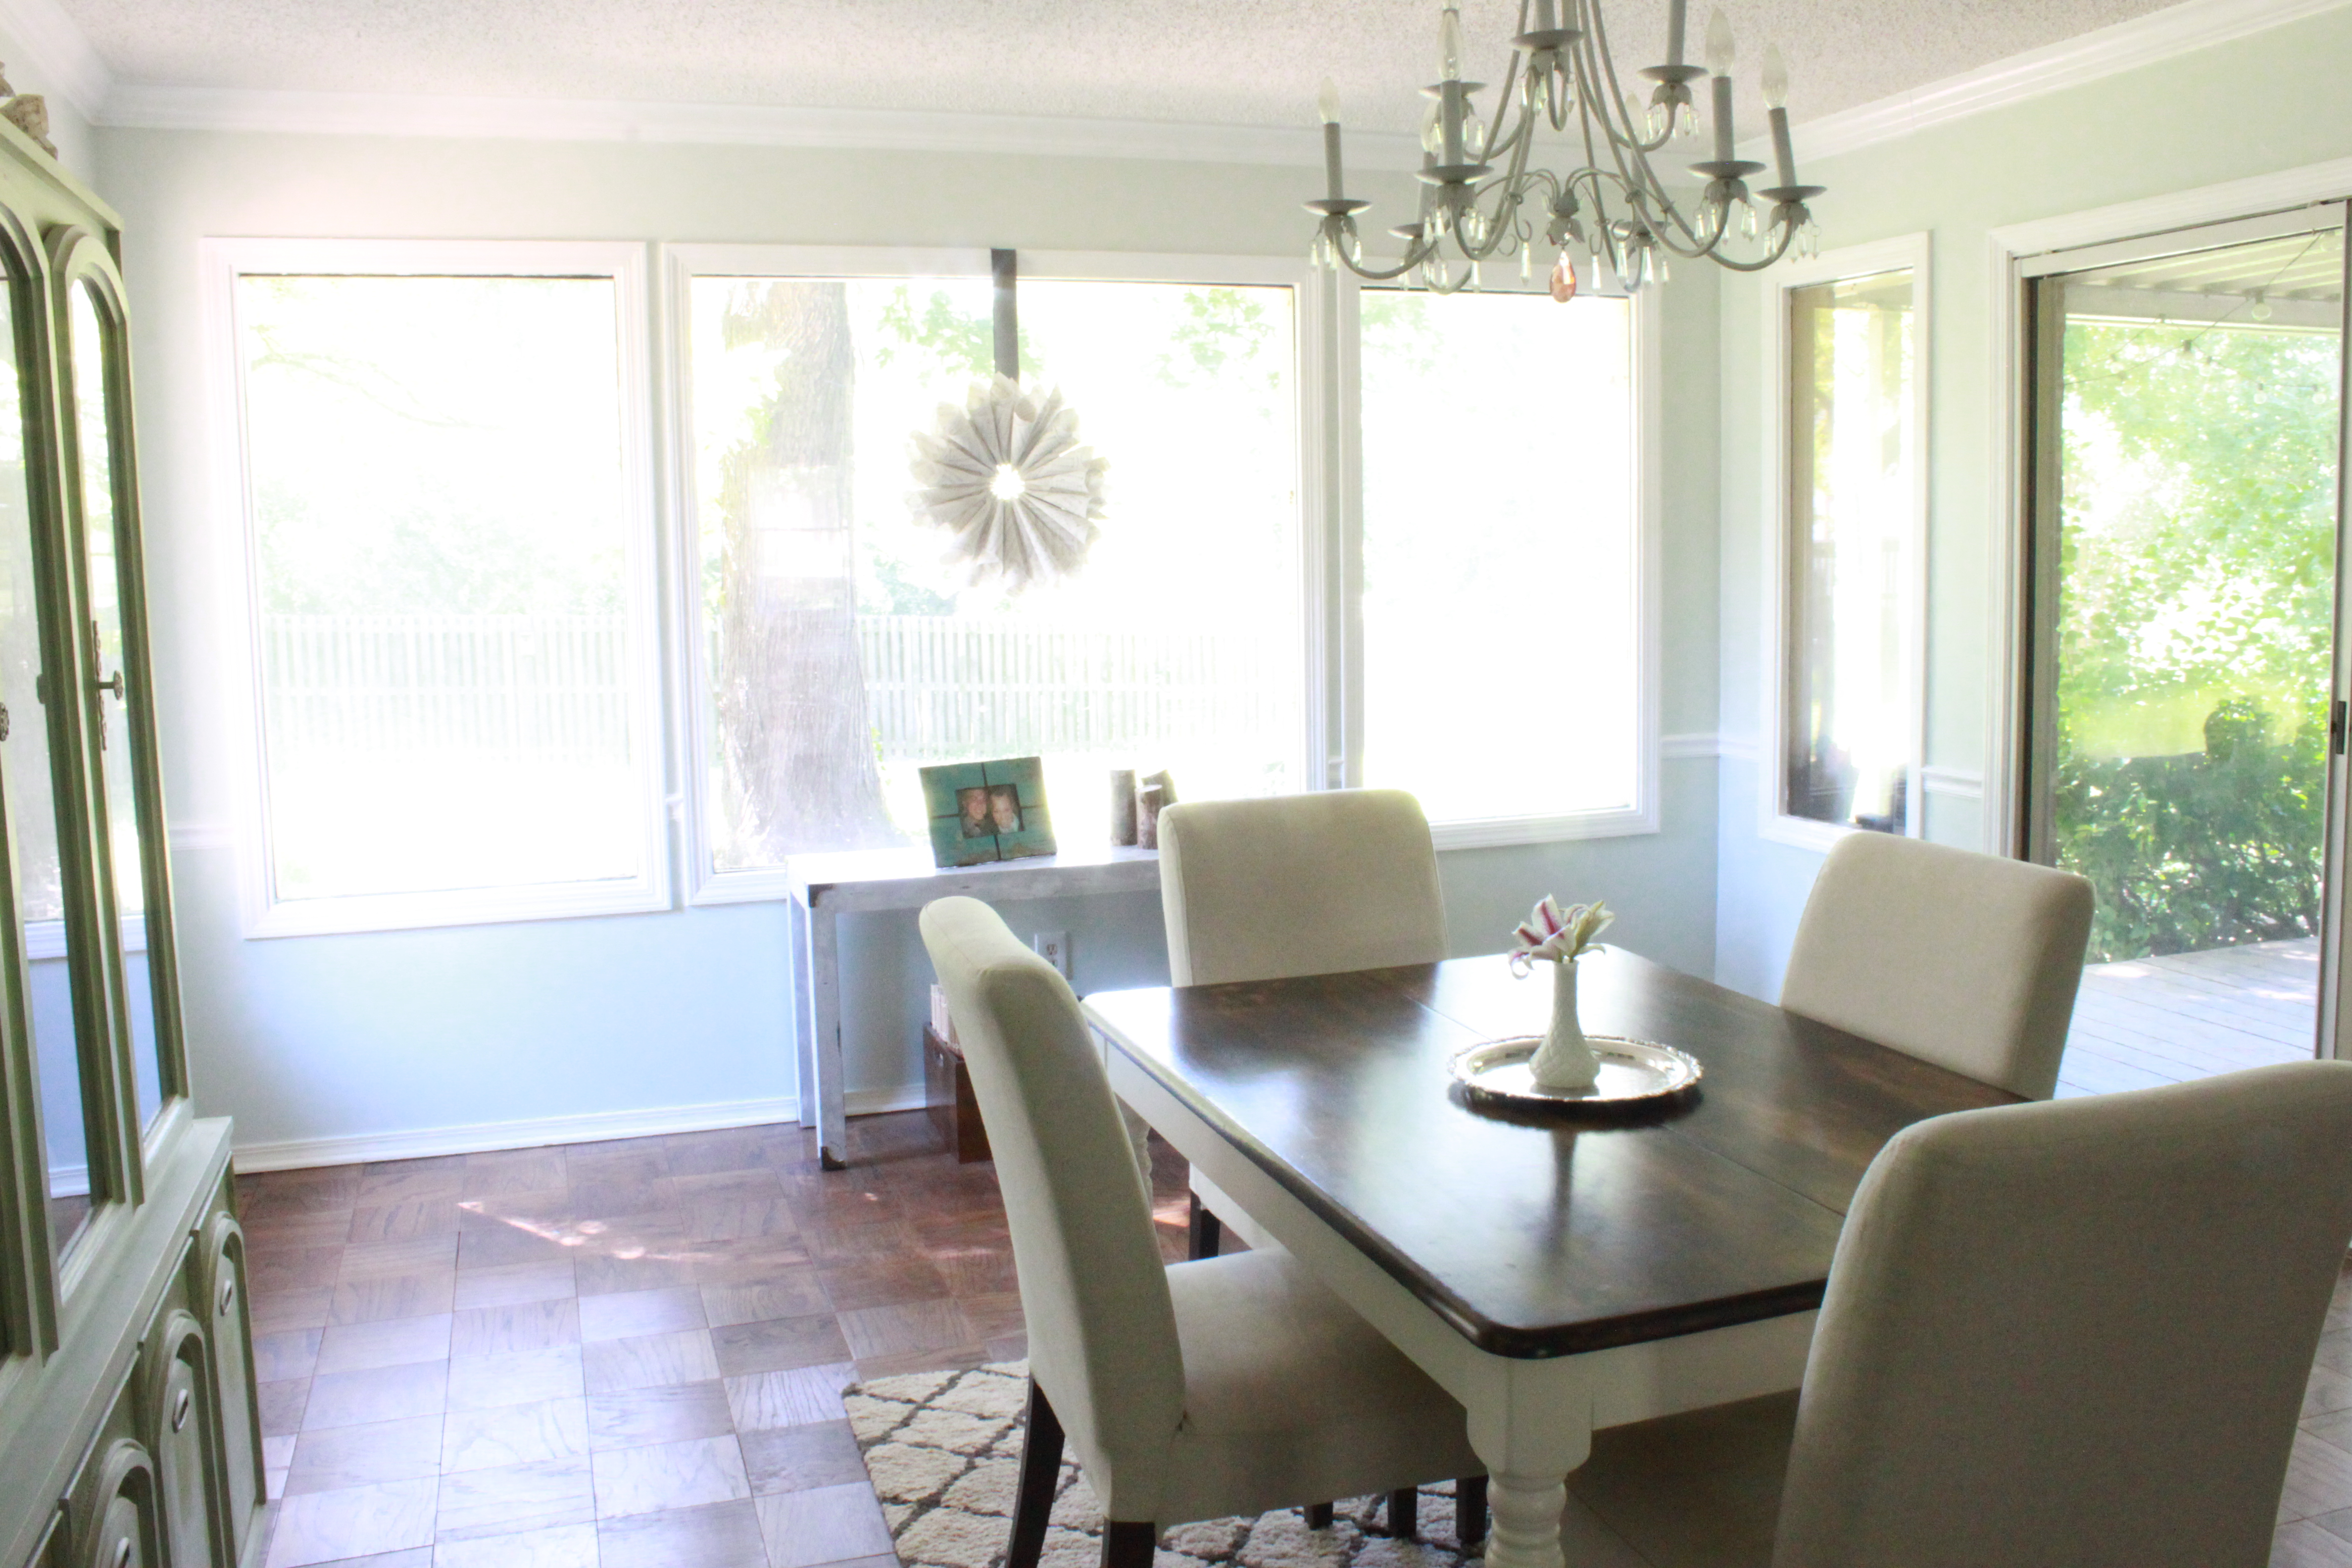 Kitchen and Dining Room Paint | All Things New Interiors